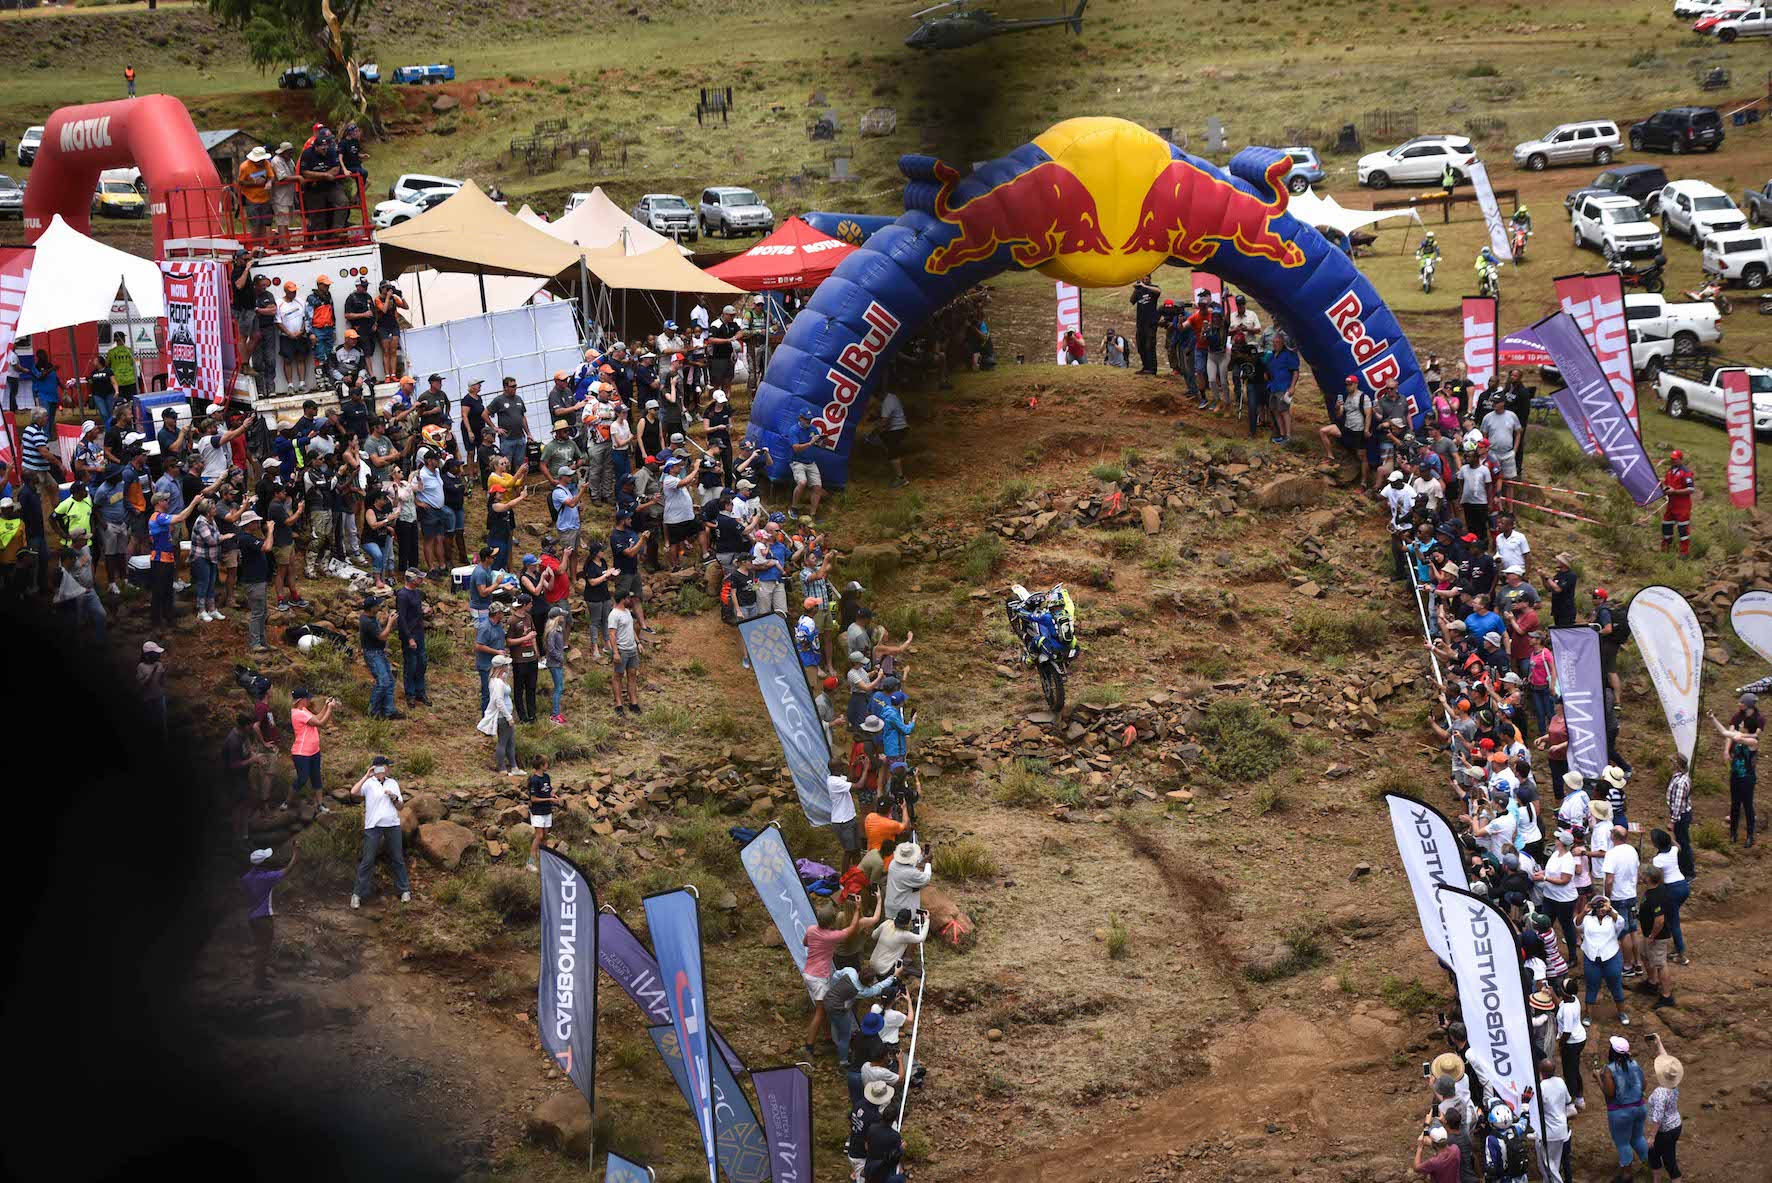 2018 Roof of Africa finish line